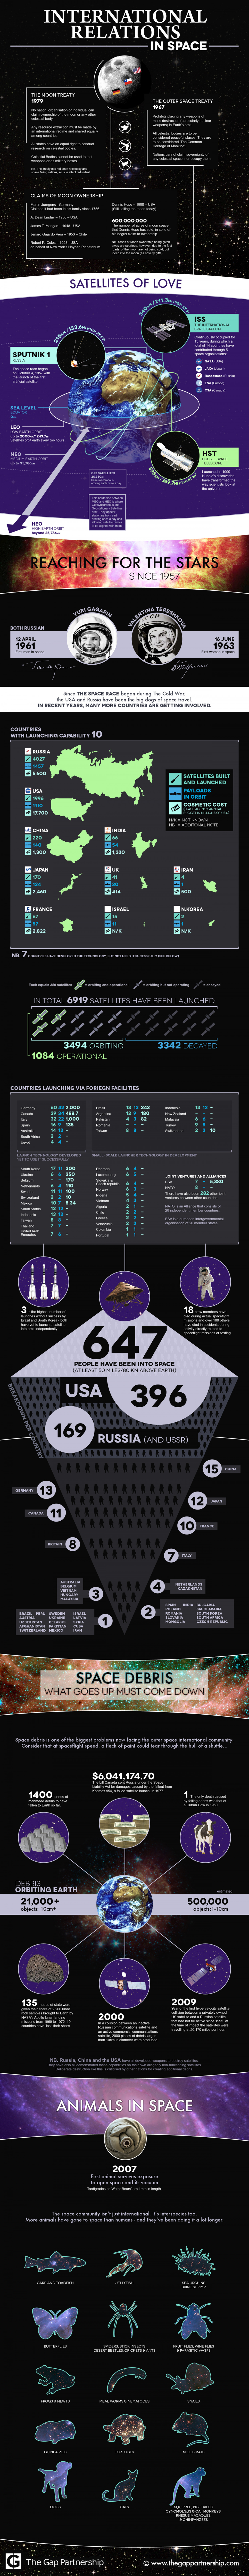 International Relations in Space Infographic